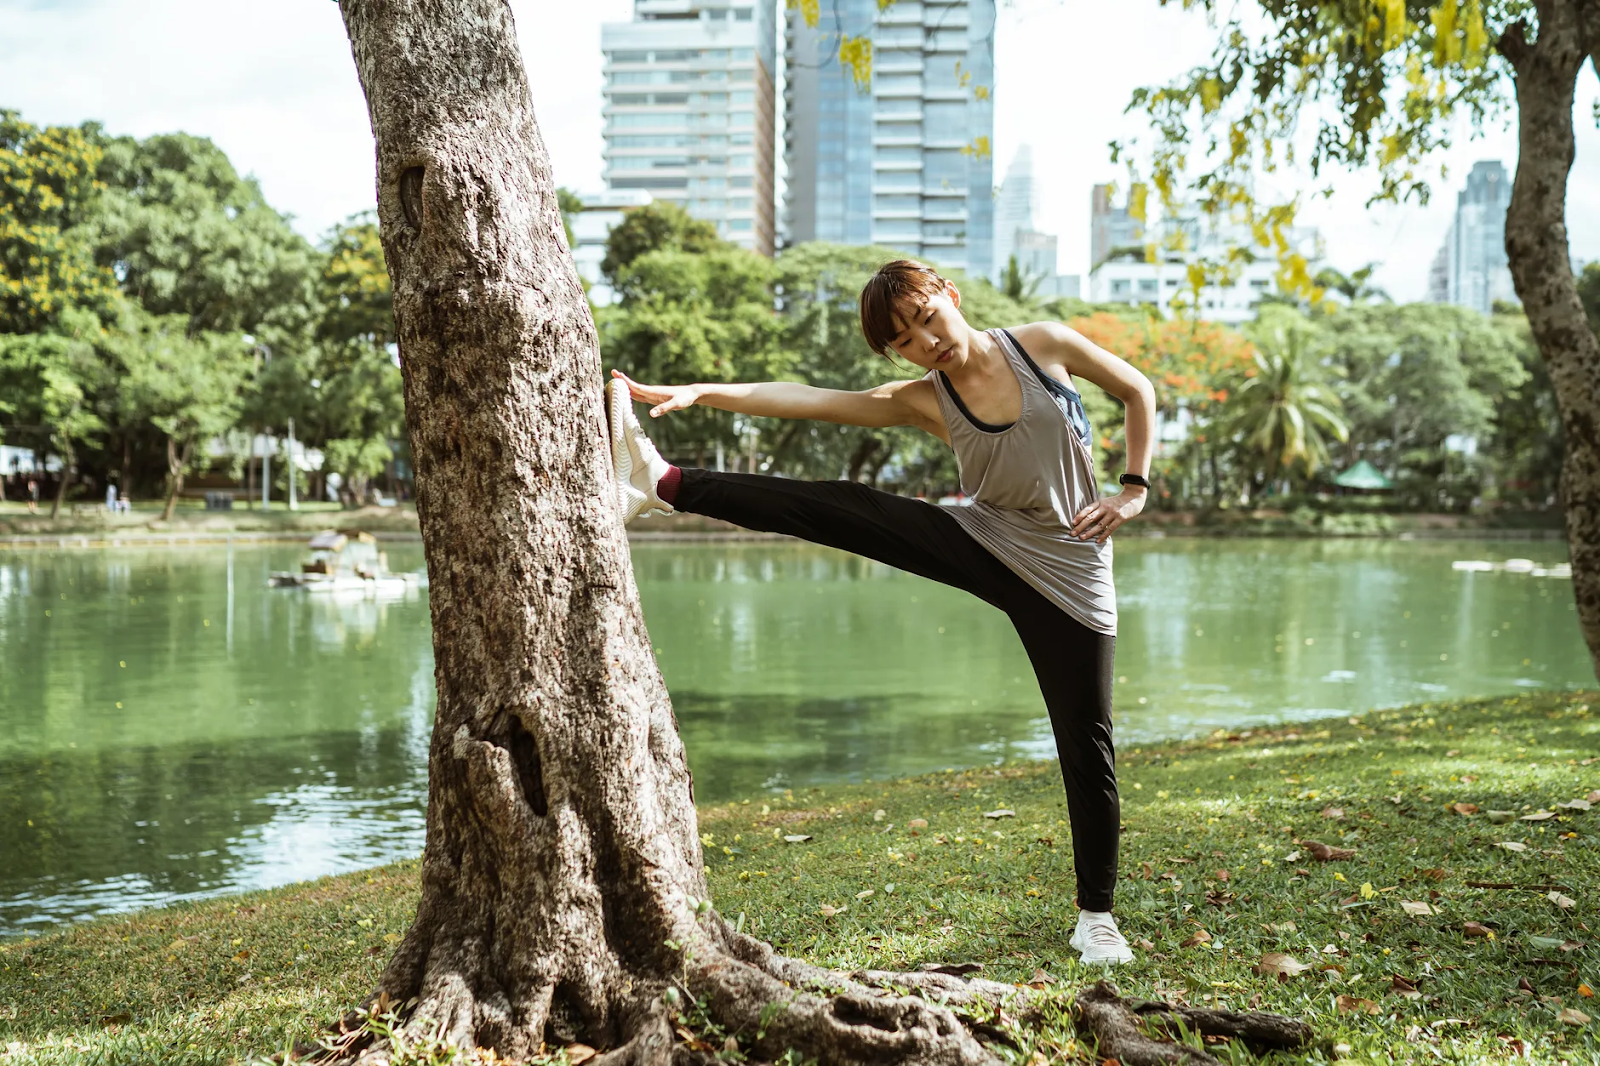 A young Asian woman stretches in front of a lake by lifting her leg against a tree